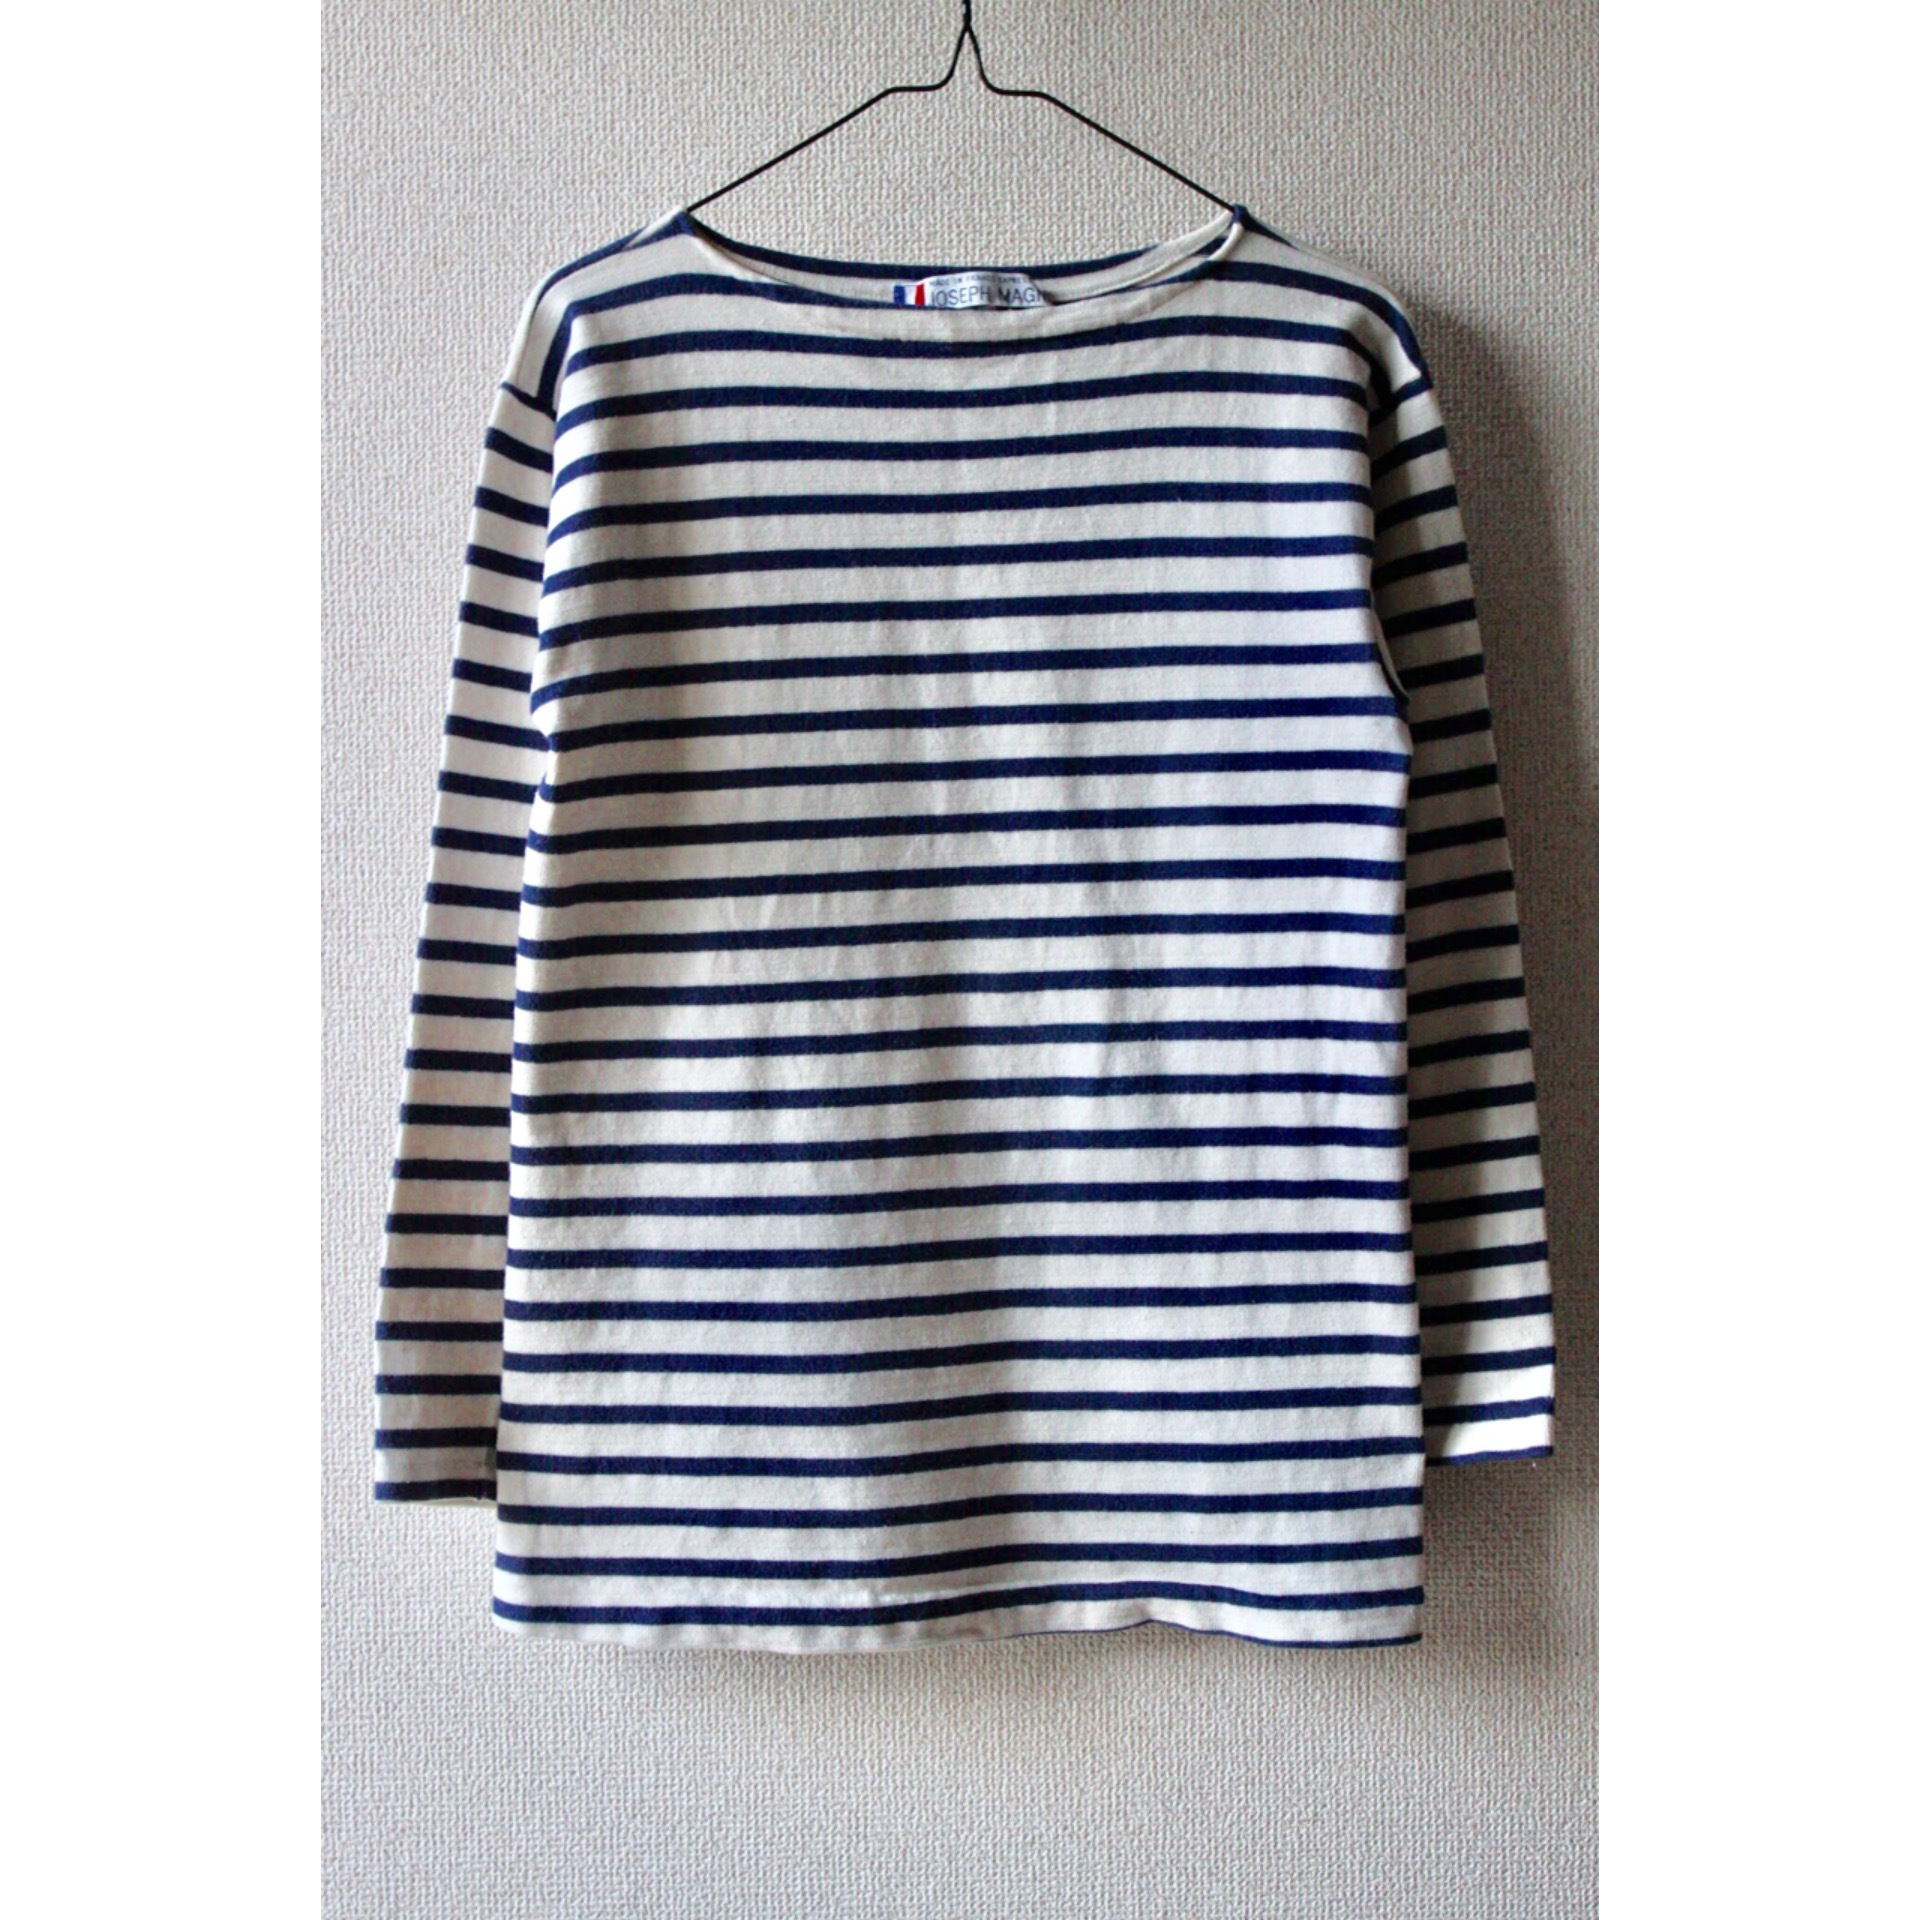 Vintage border long sleeve shirt